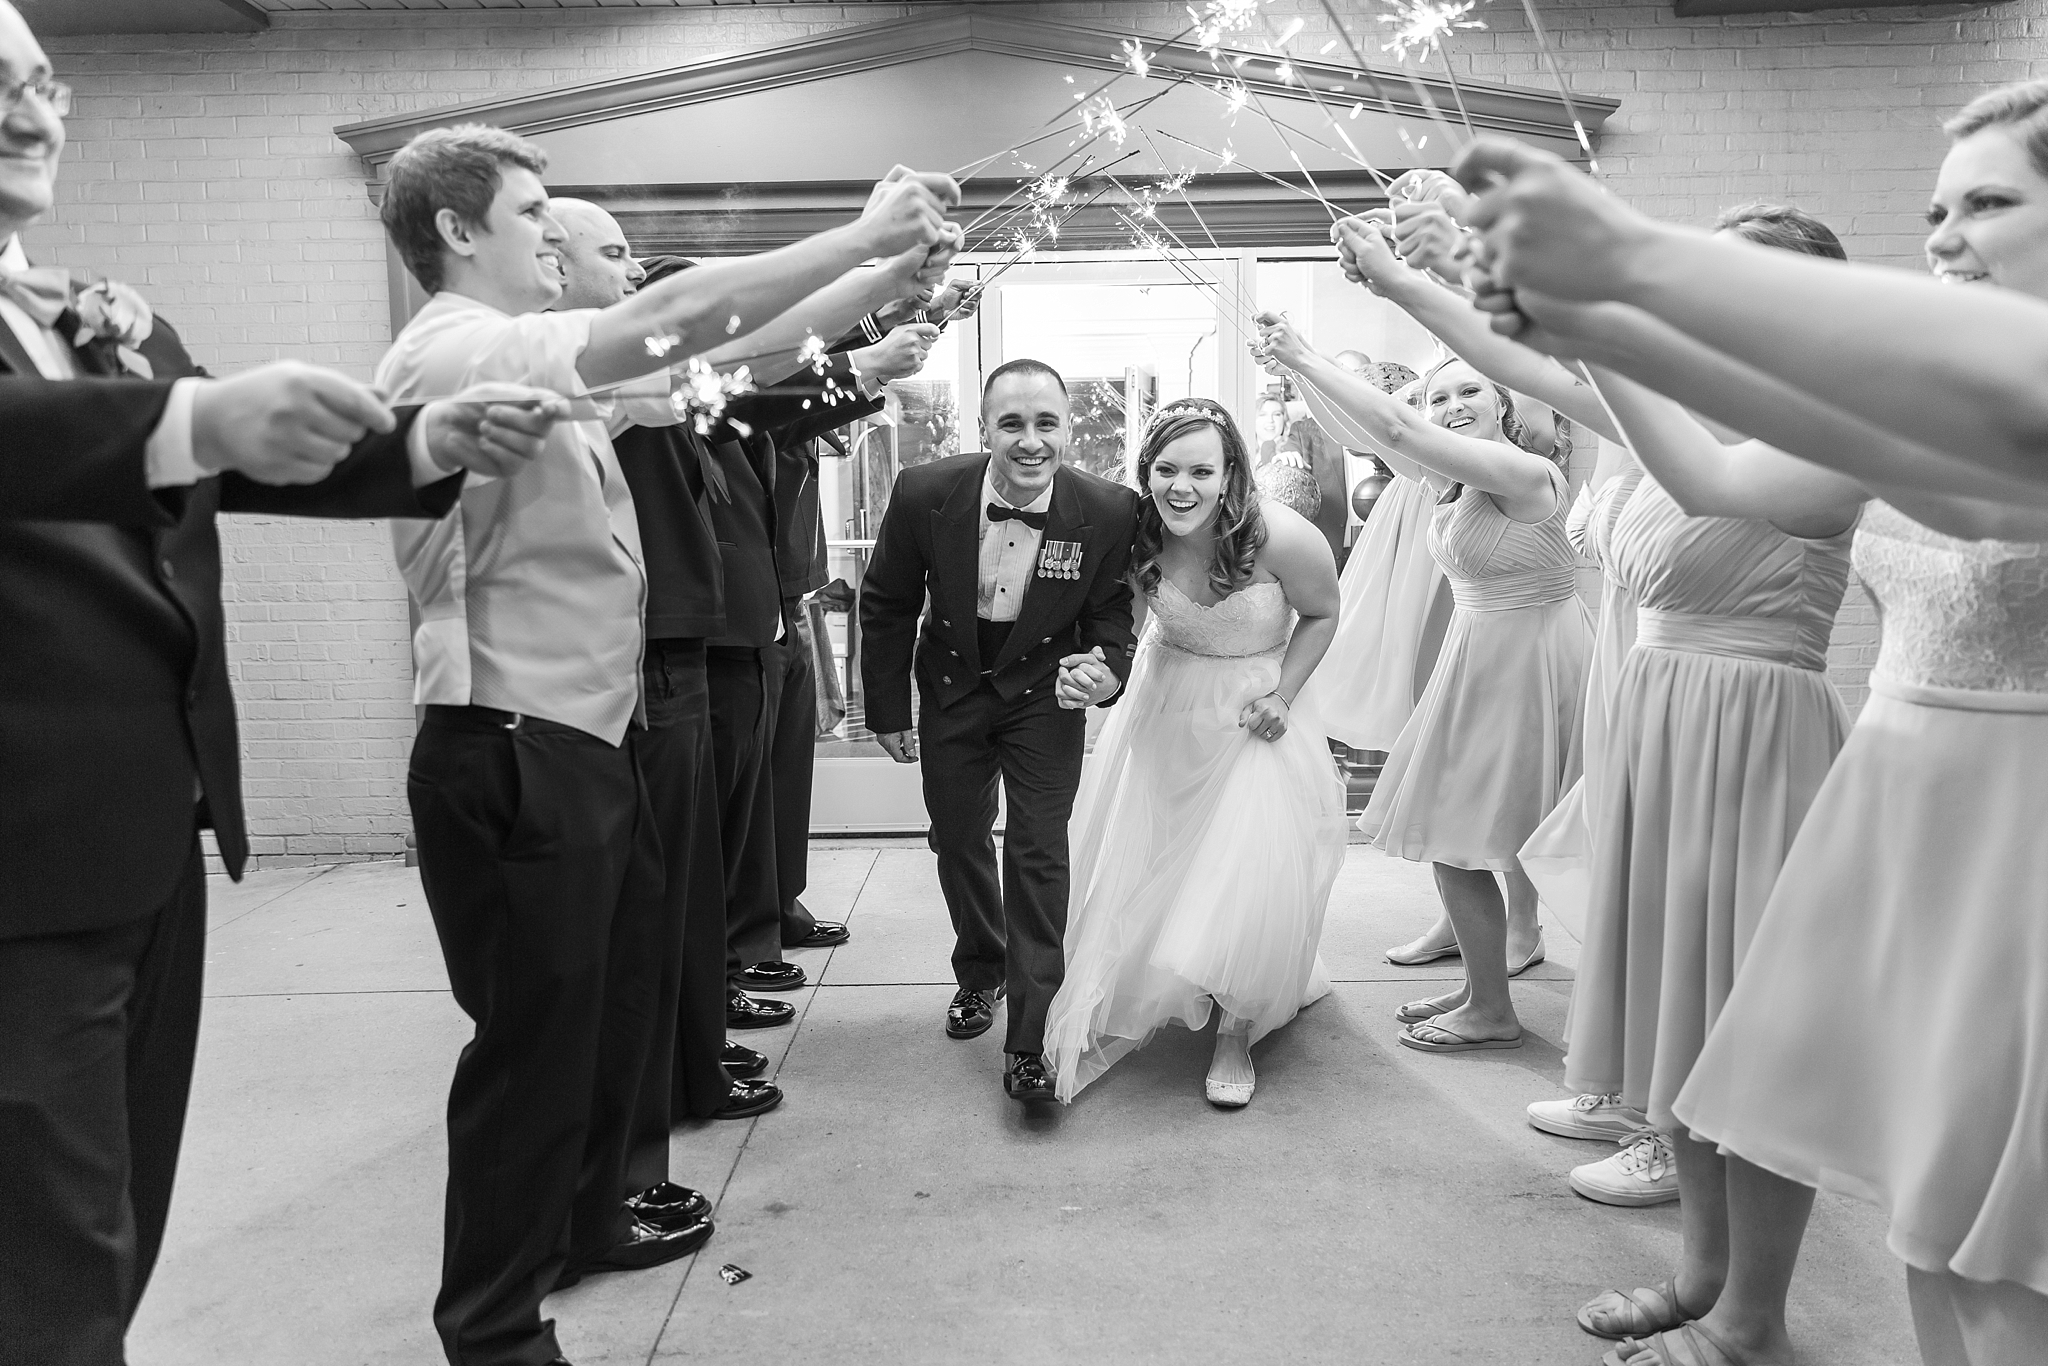 romantic-artful-candid-wedding-photos-in-st-clair-shores-at-the-white-house-wedding-chapel-by-courtney-carolyn-photography_0088.jpg